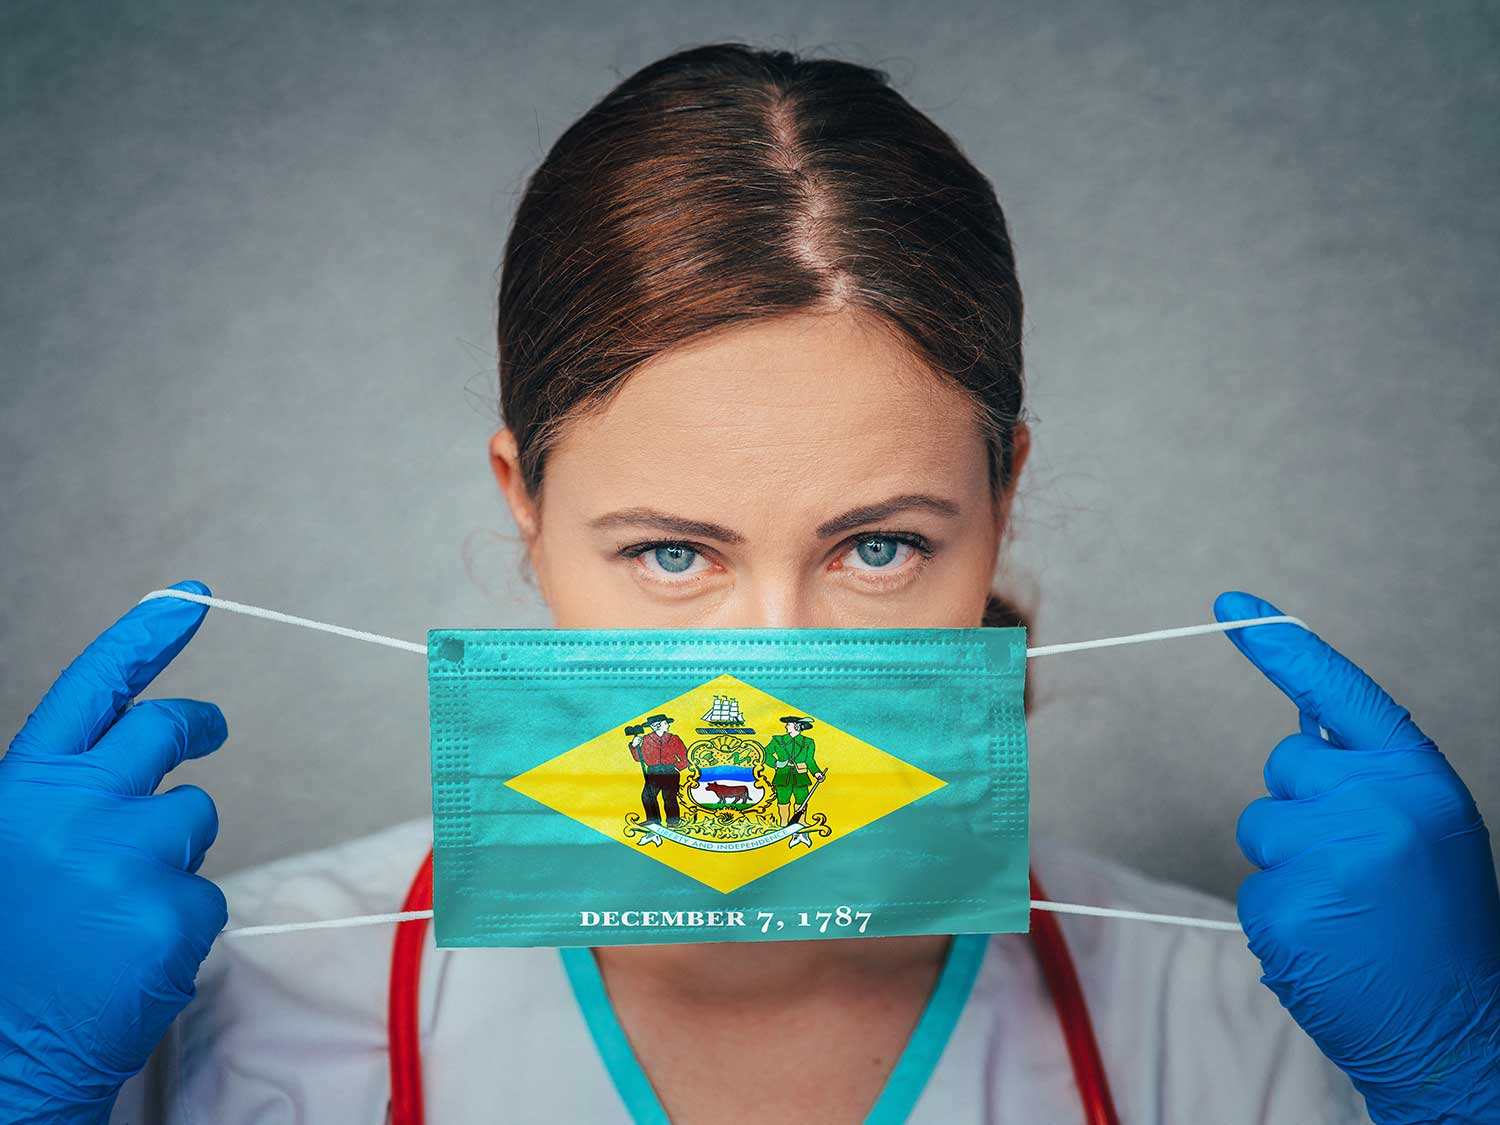 Female Doctor With Medical Malpractice Insurance Holding Mask With Delaware State Flag Printed On It